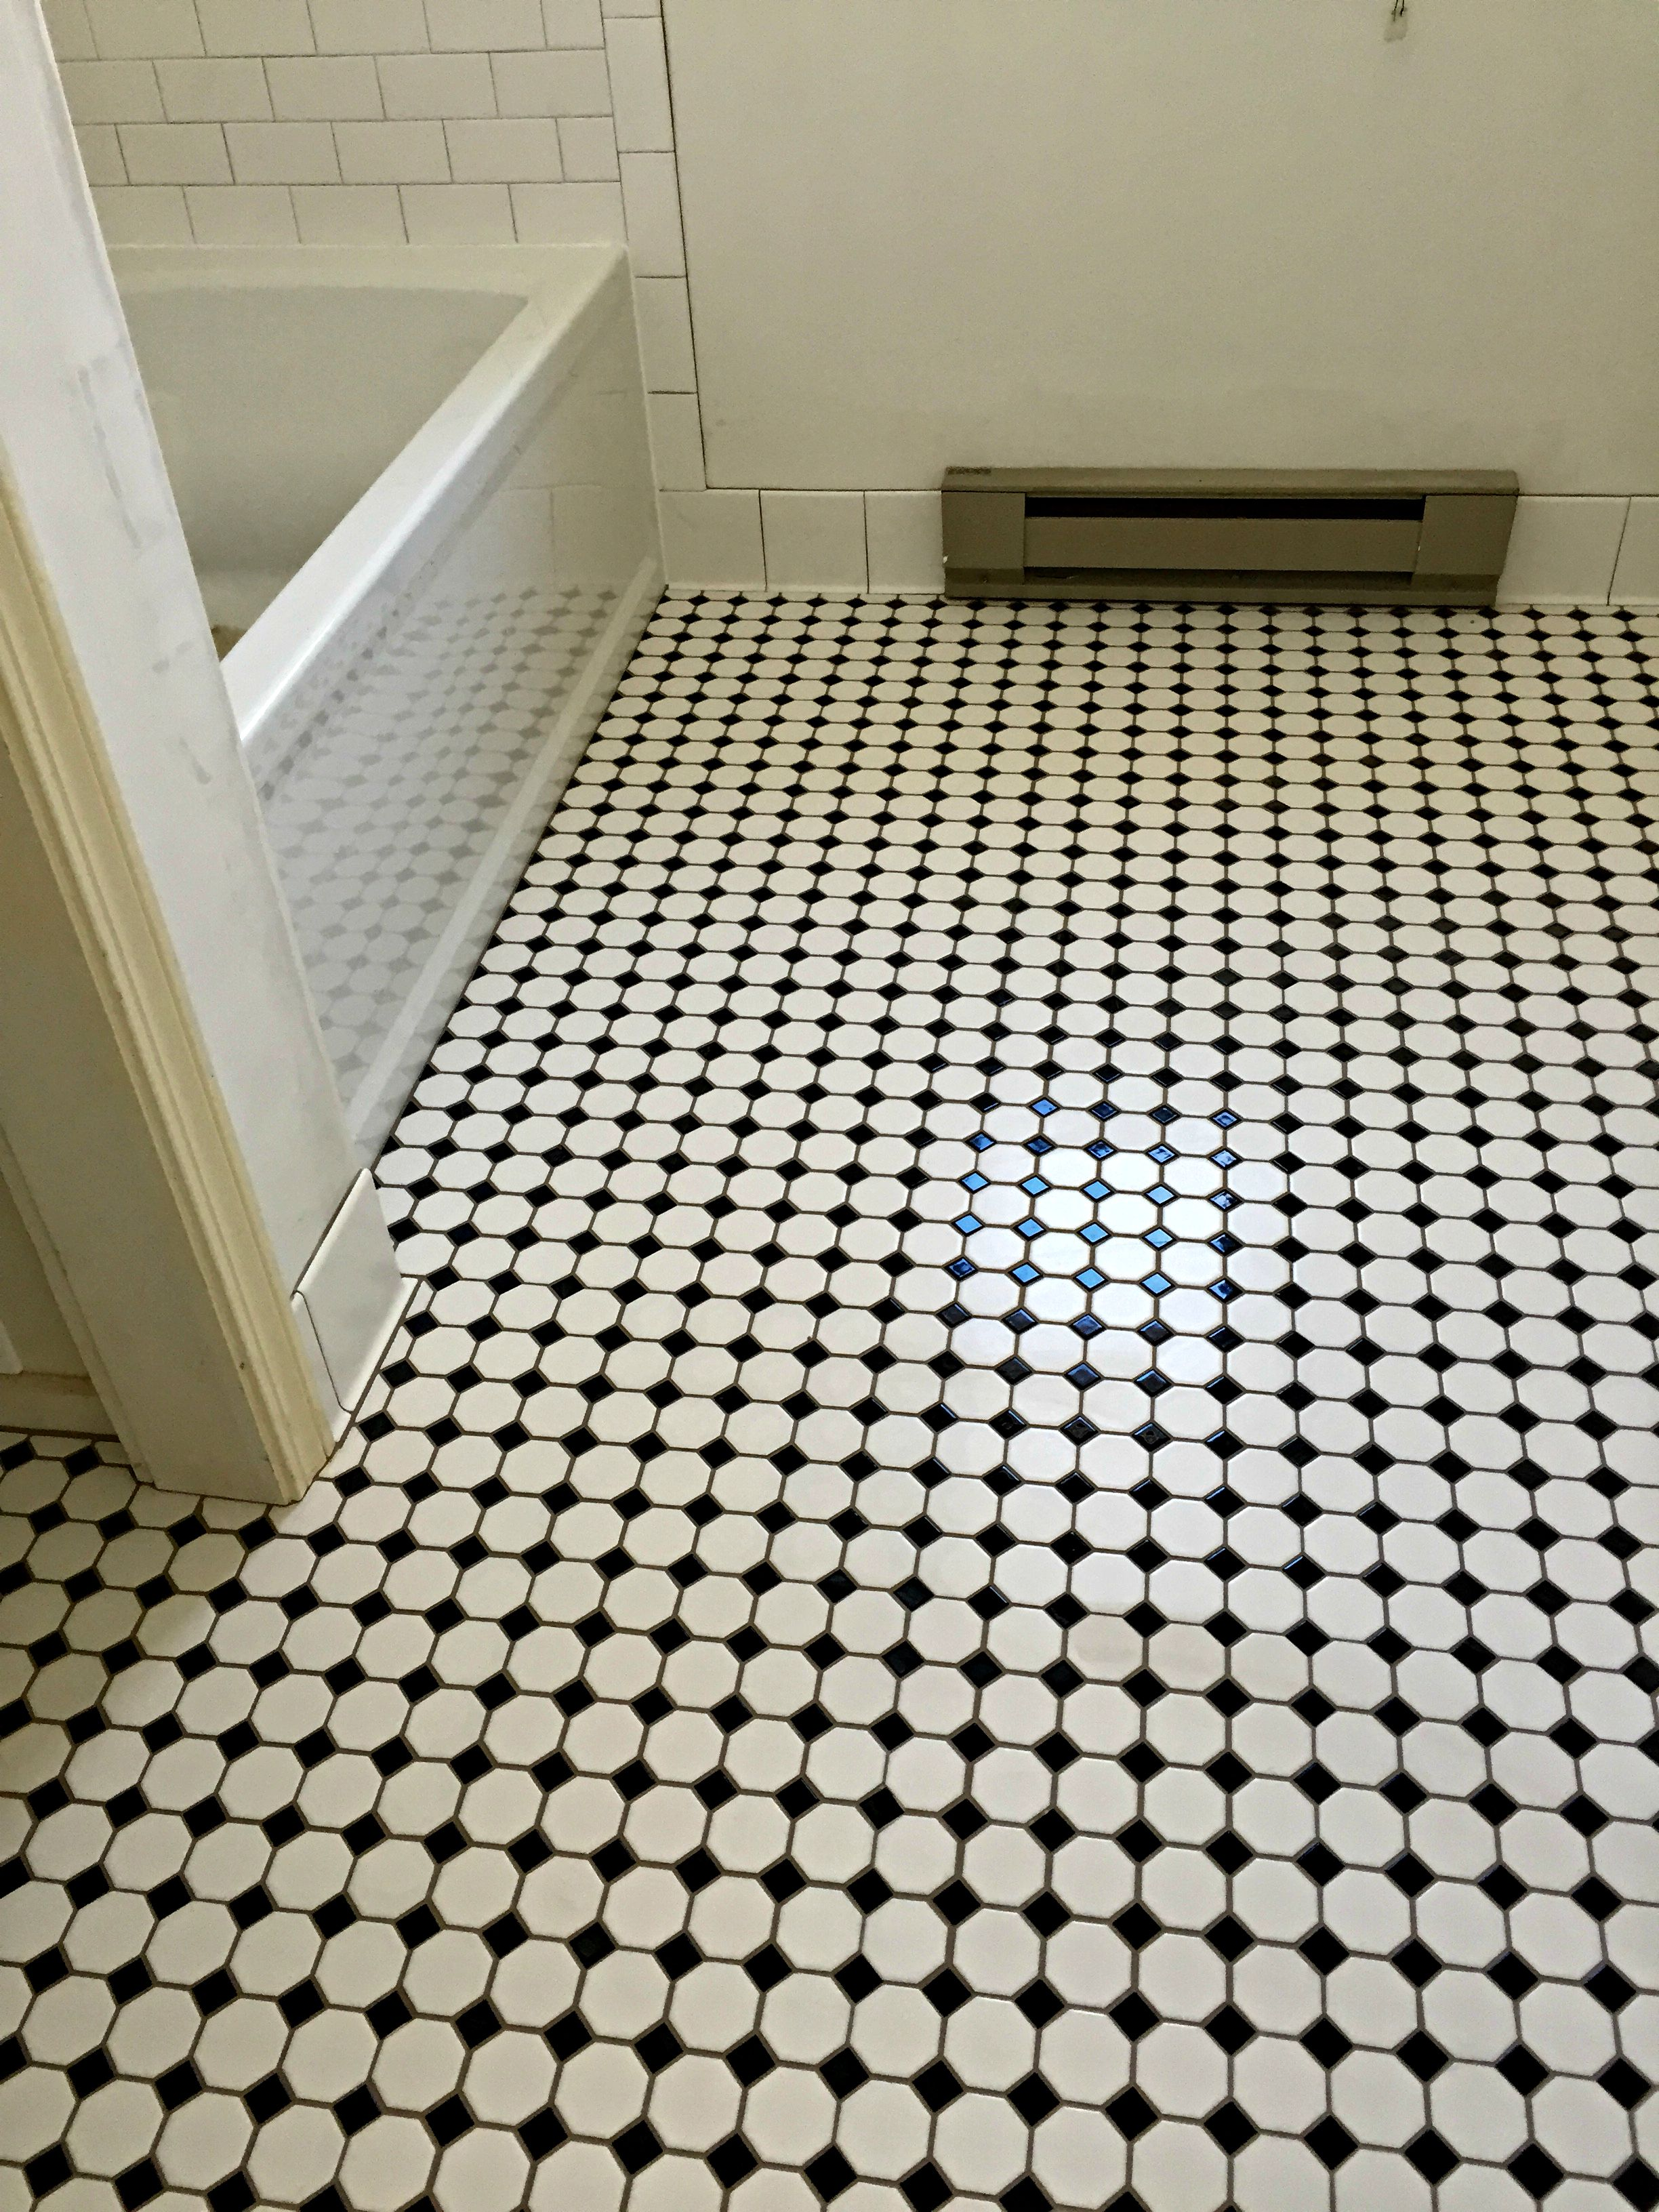 Bathroom Floor Daltile Octagon Dot Mosaic W Black Bath Walls